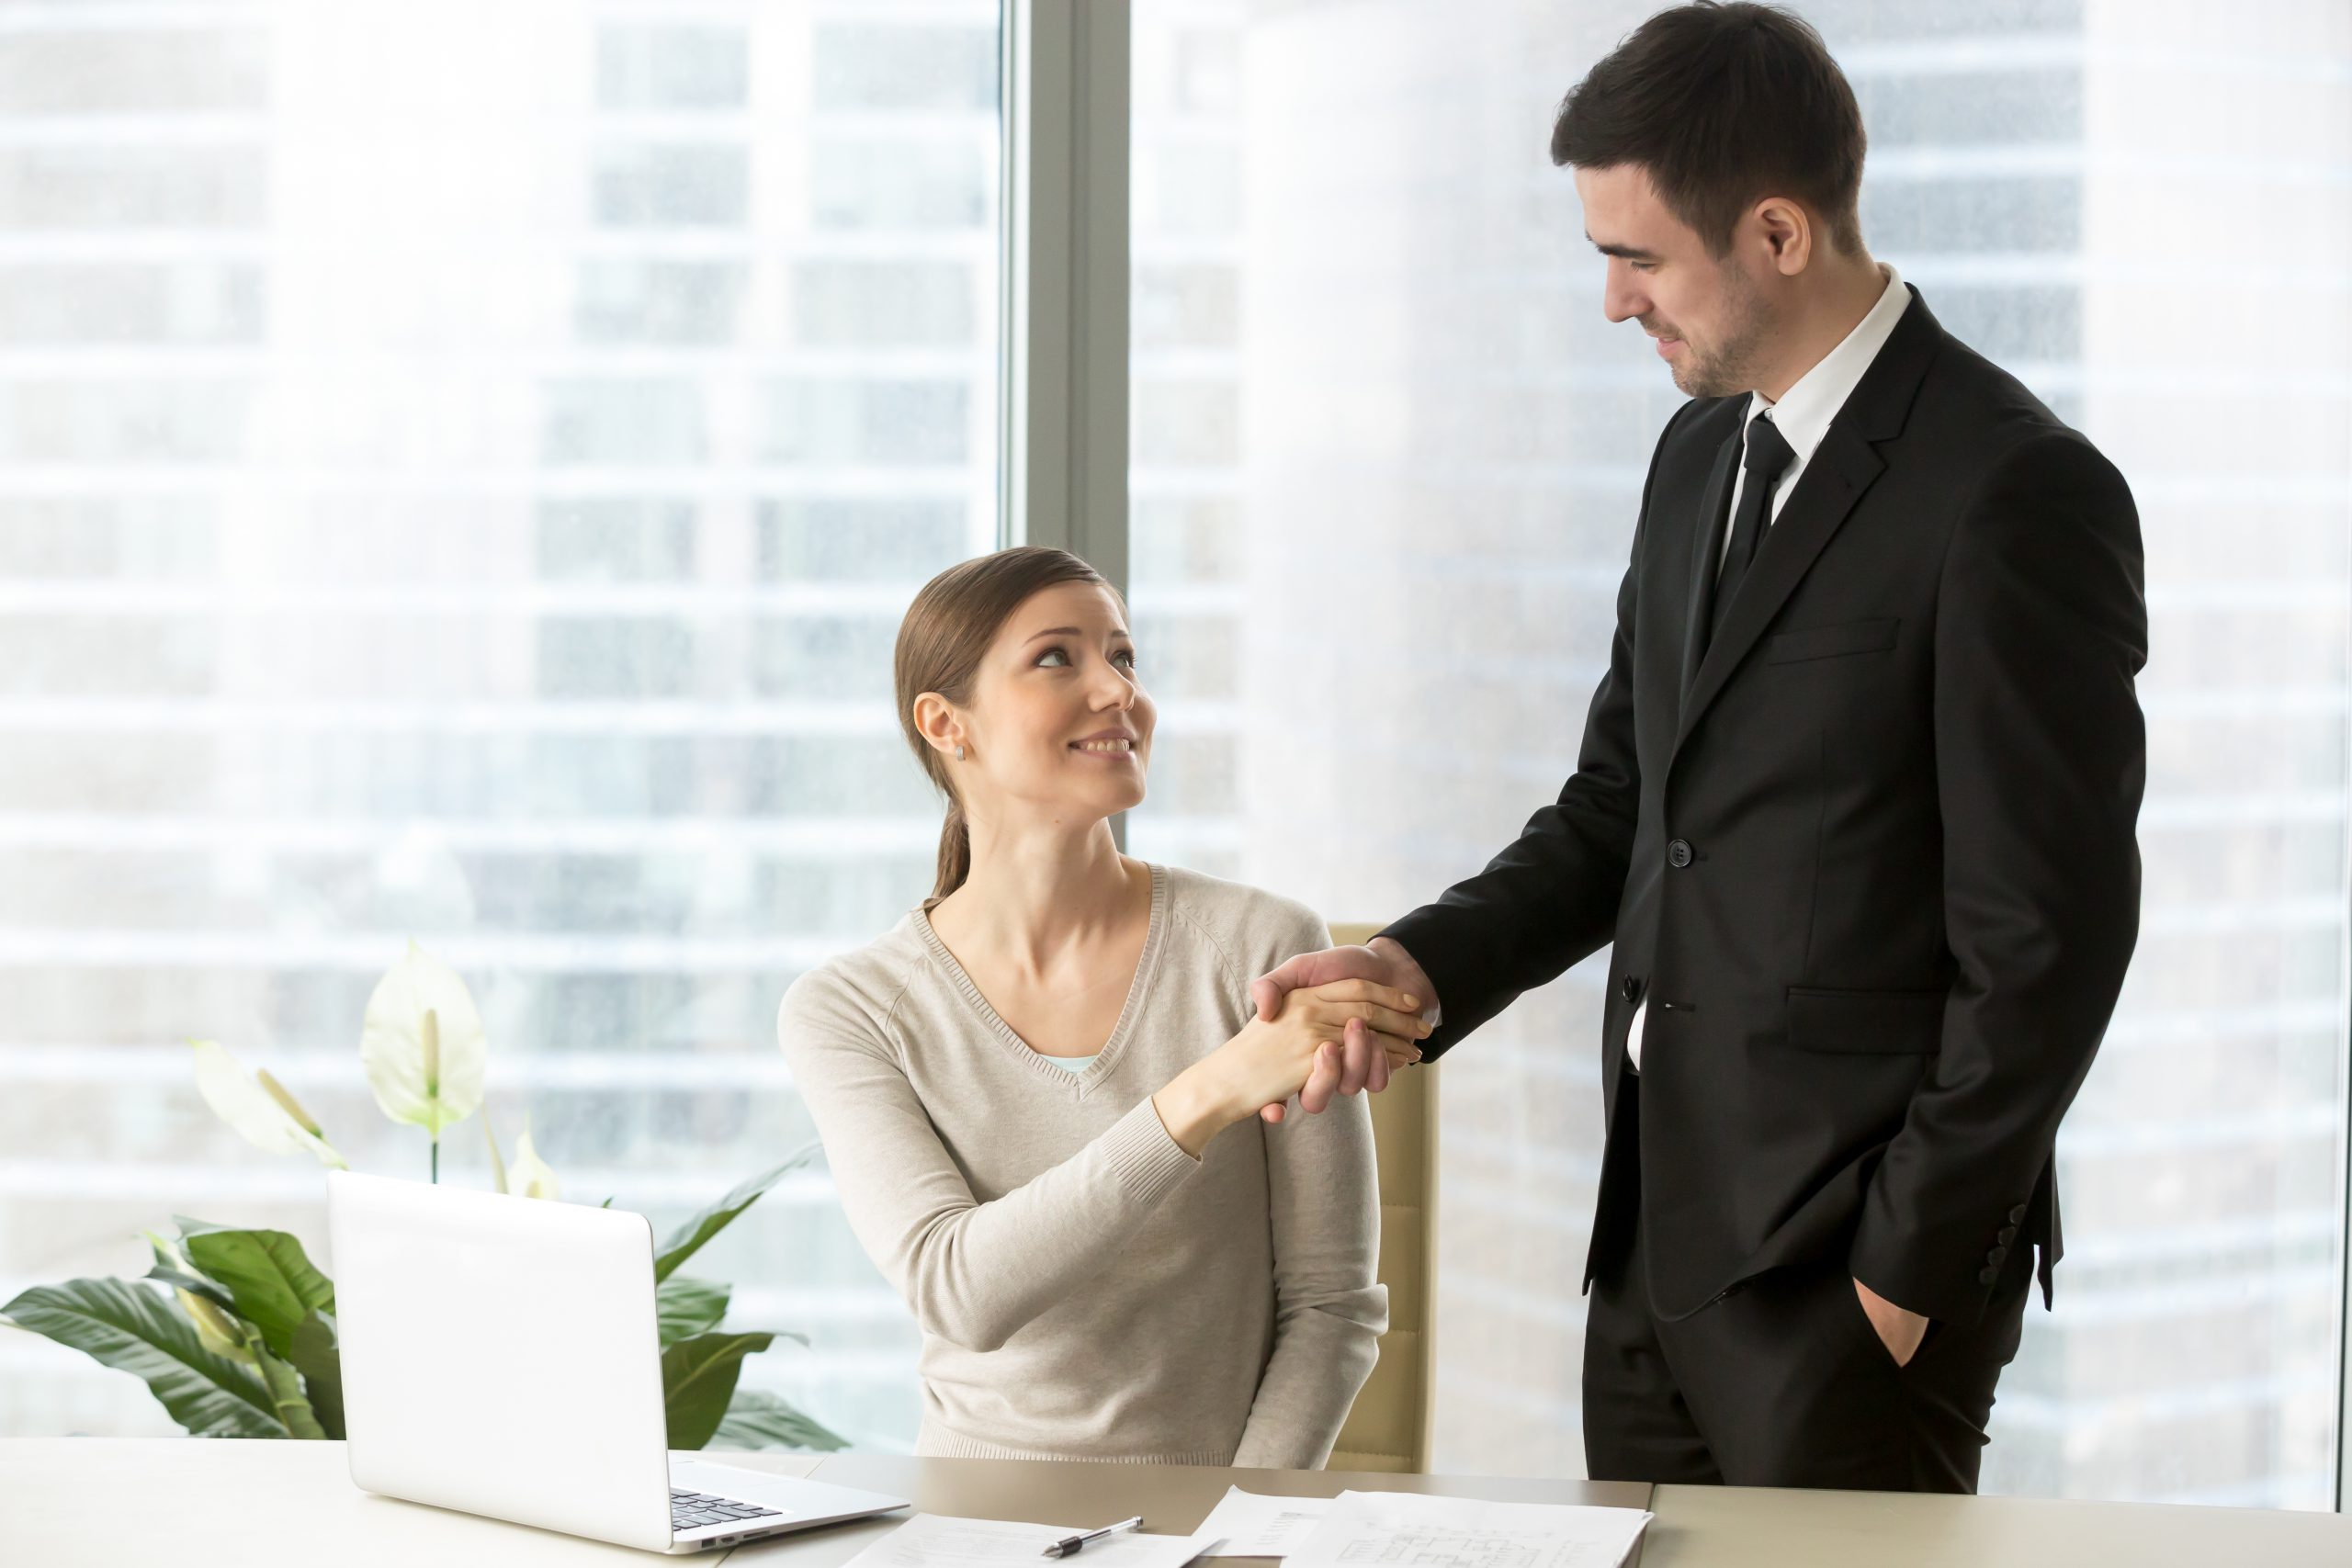 Recognizing employees is important for employee motivation